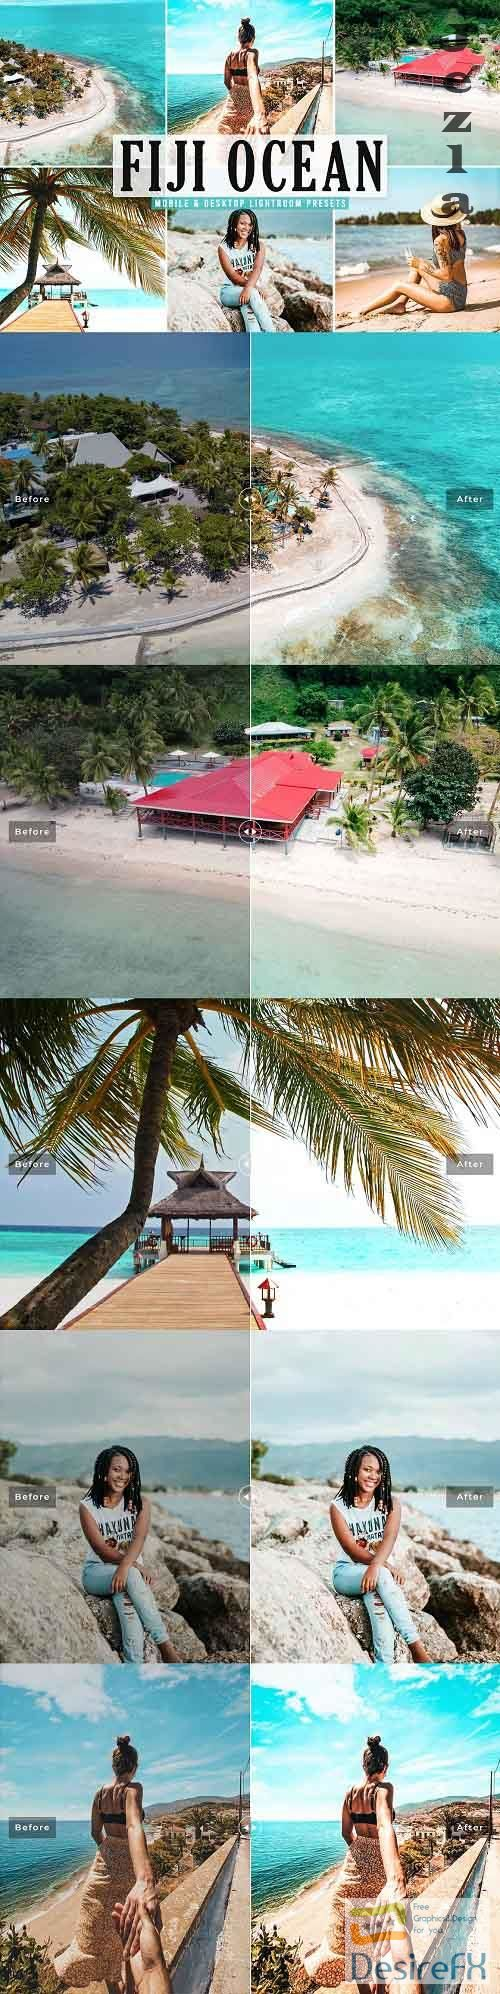 Fiji Ocean Pro Lightroom Presets - 5542413 - Mobile & Desktop